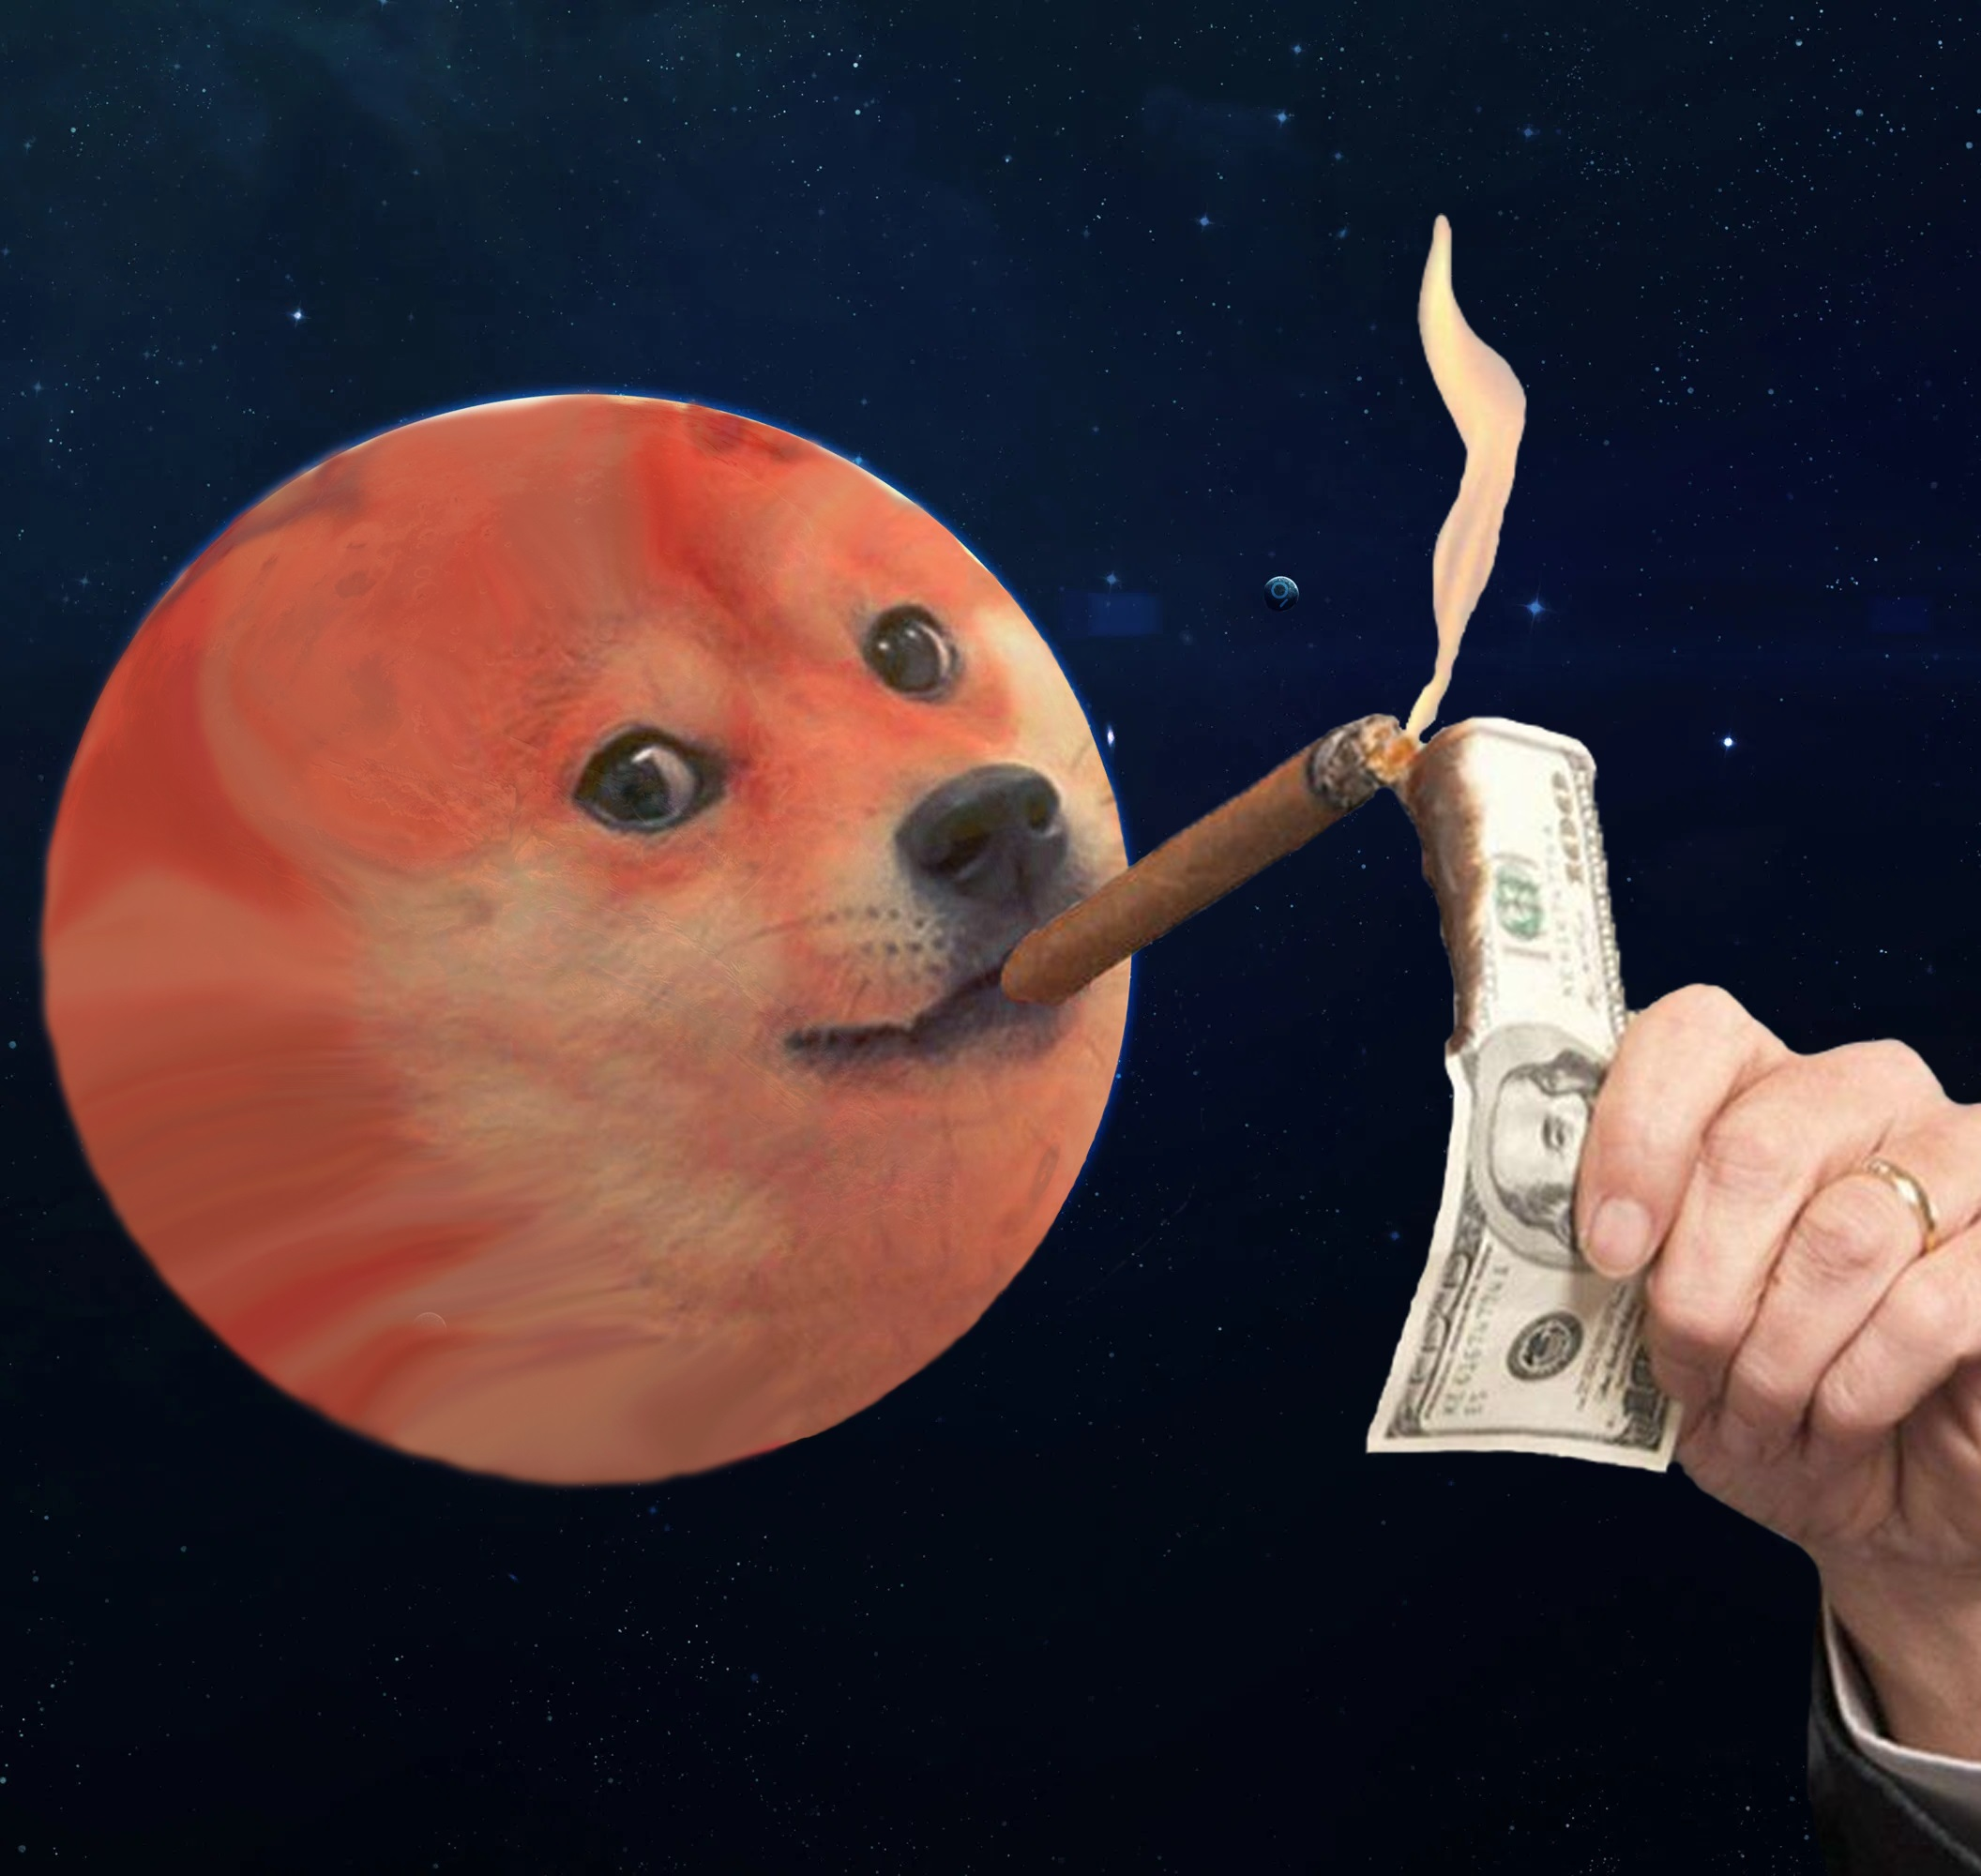 Plant Mars with a doge face lighting cigar with dollar bill